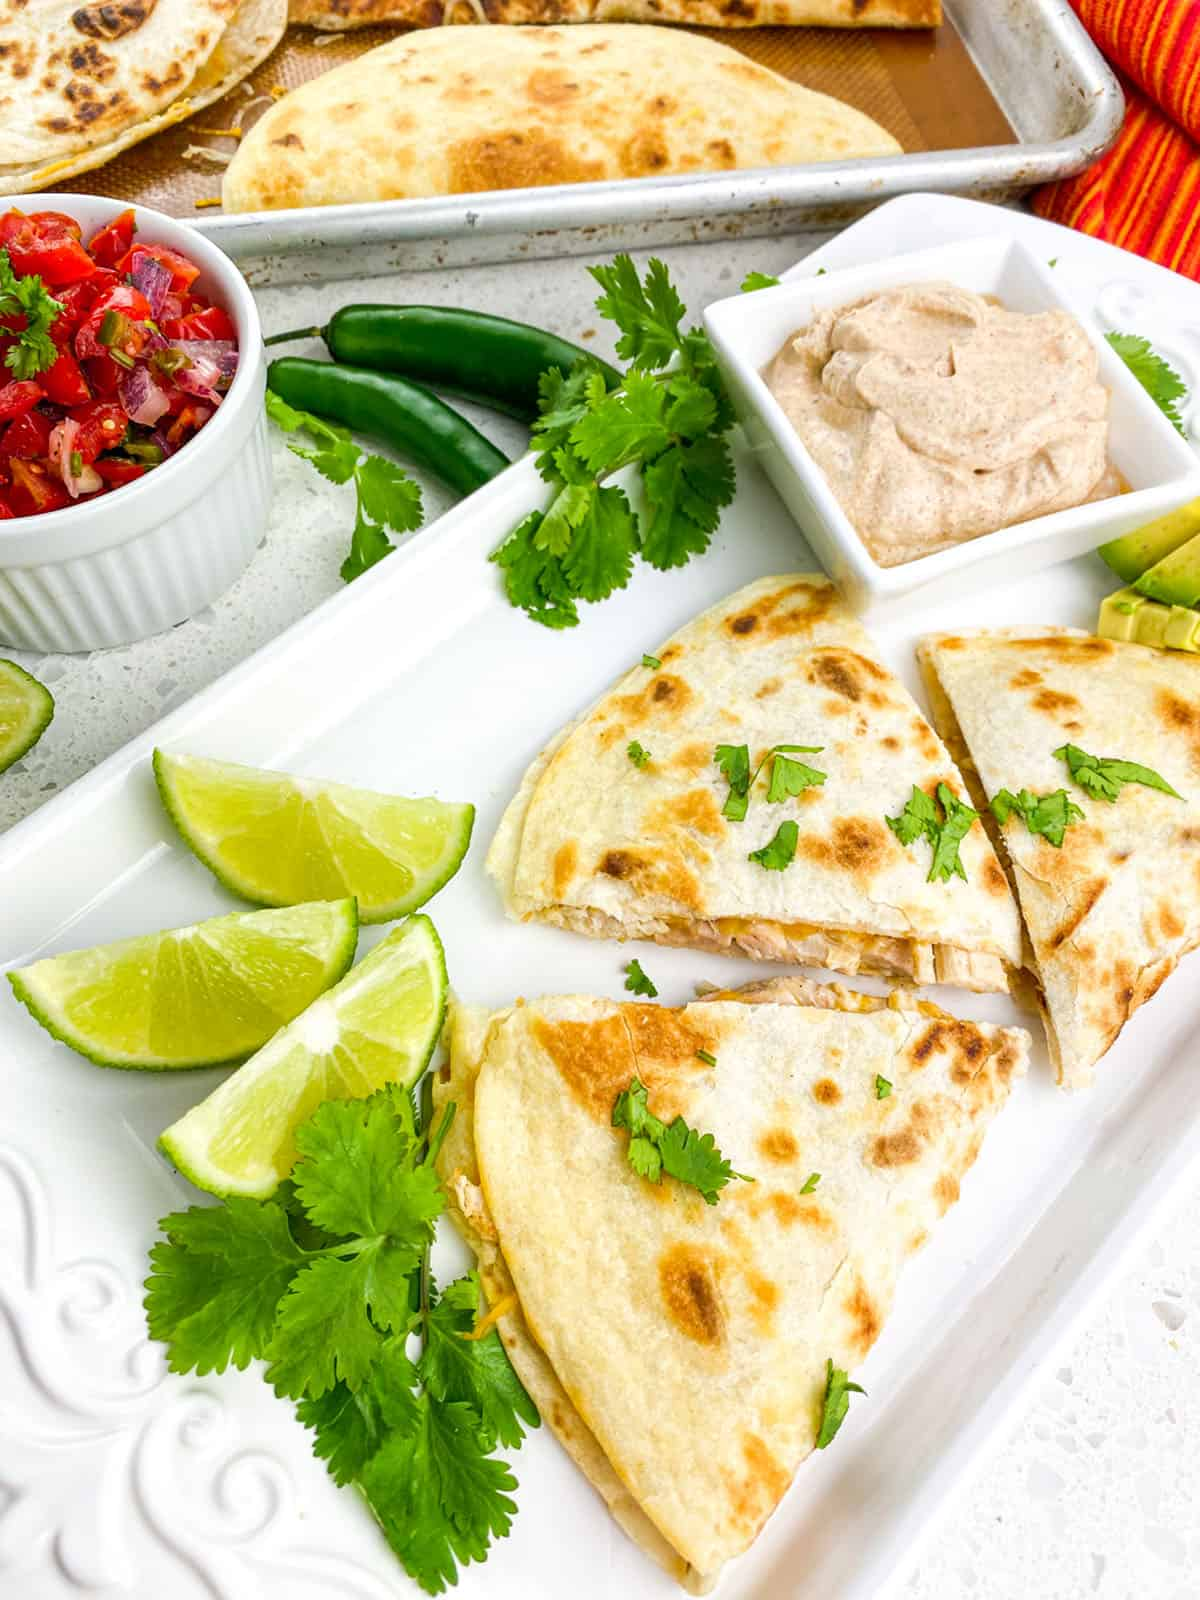 cooked quesadillas cut into thirds on white rectangular plate with lime wedges and seasoned sour cream and pico de gallo on side